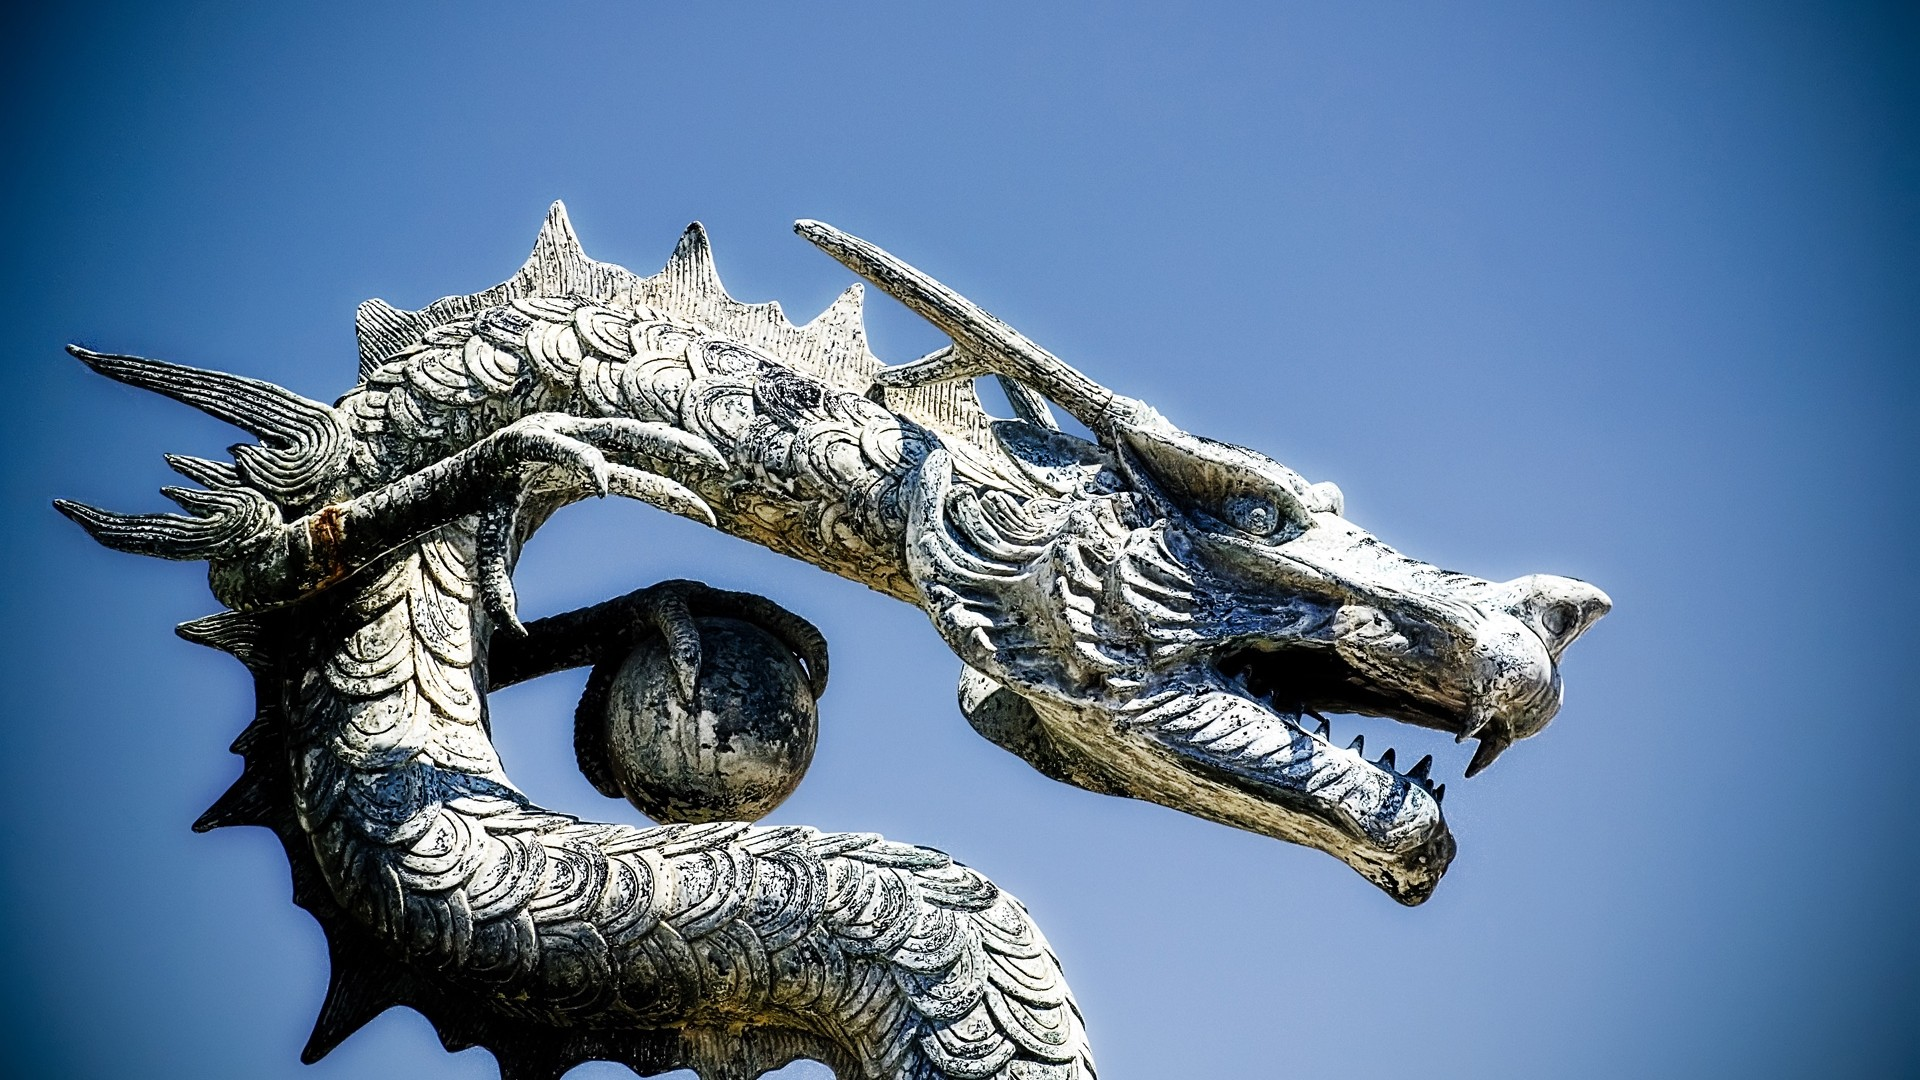 Chinese Dragon Wallpaper for pc